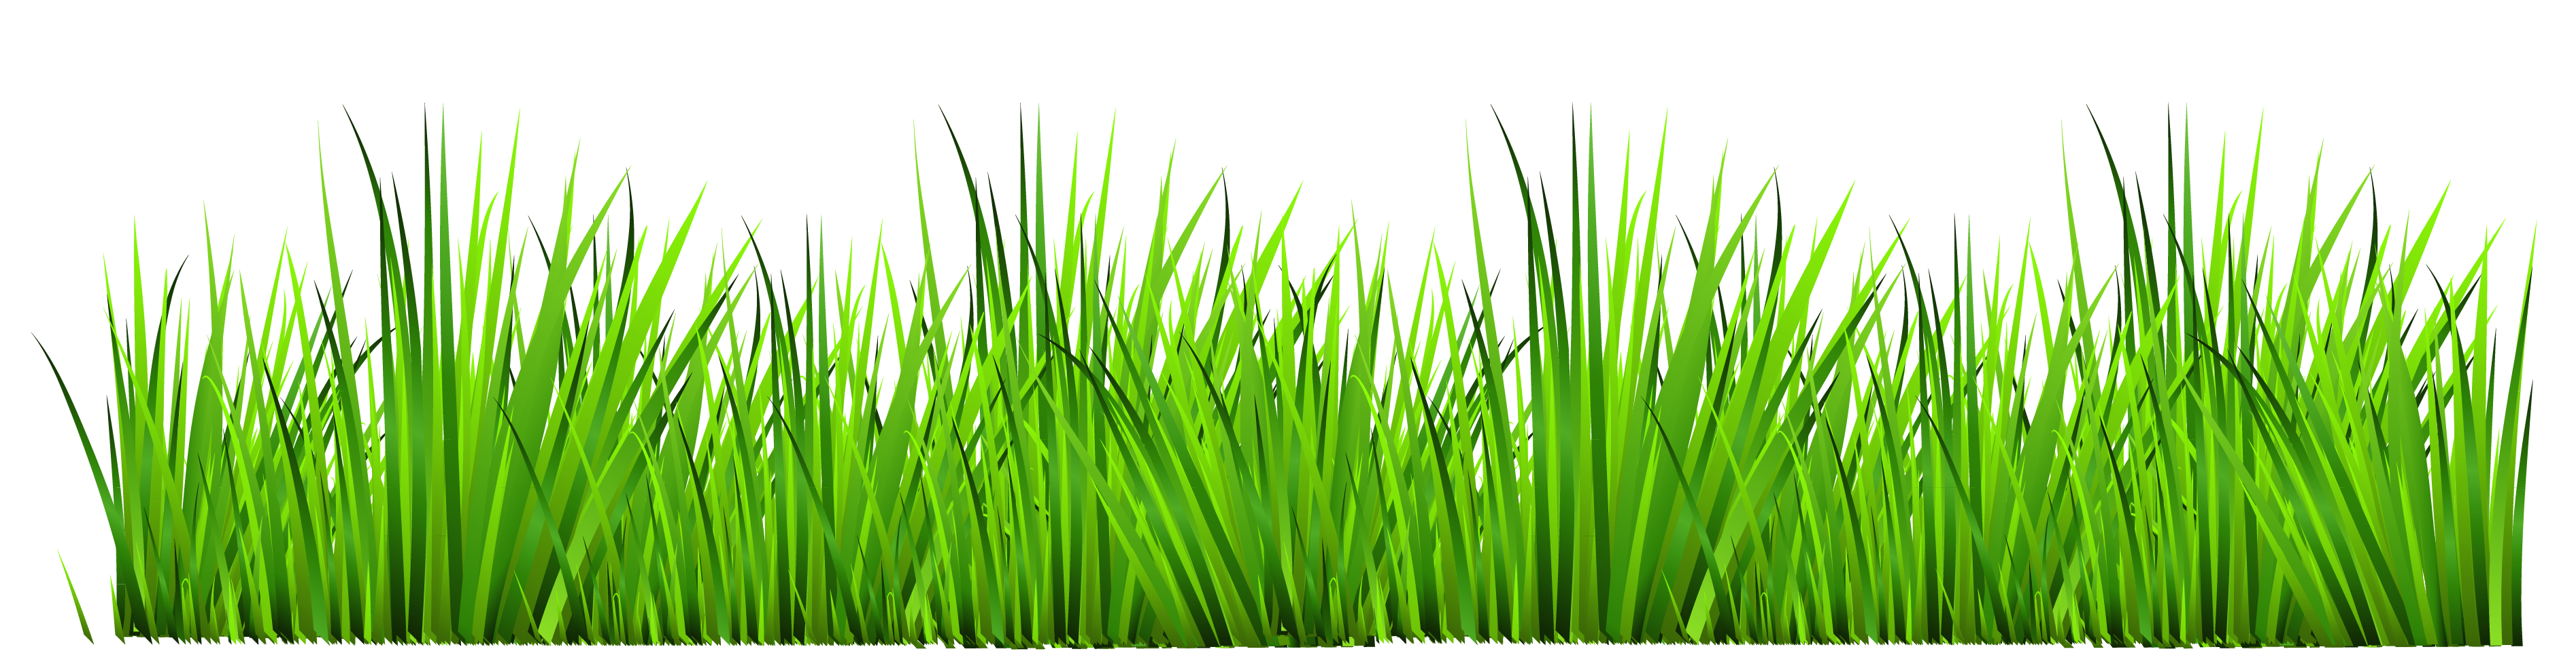 grass in air png